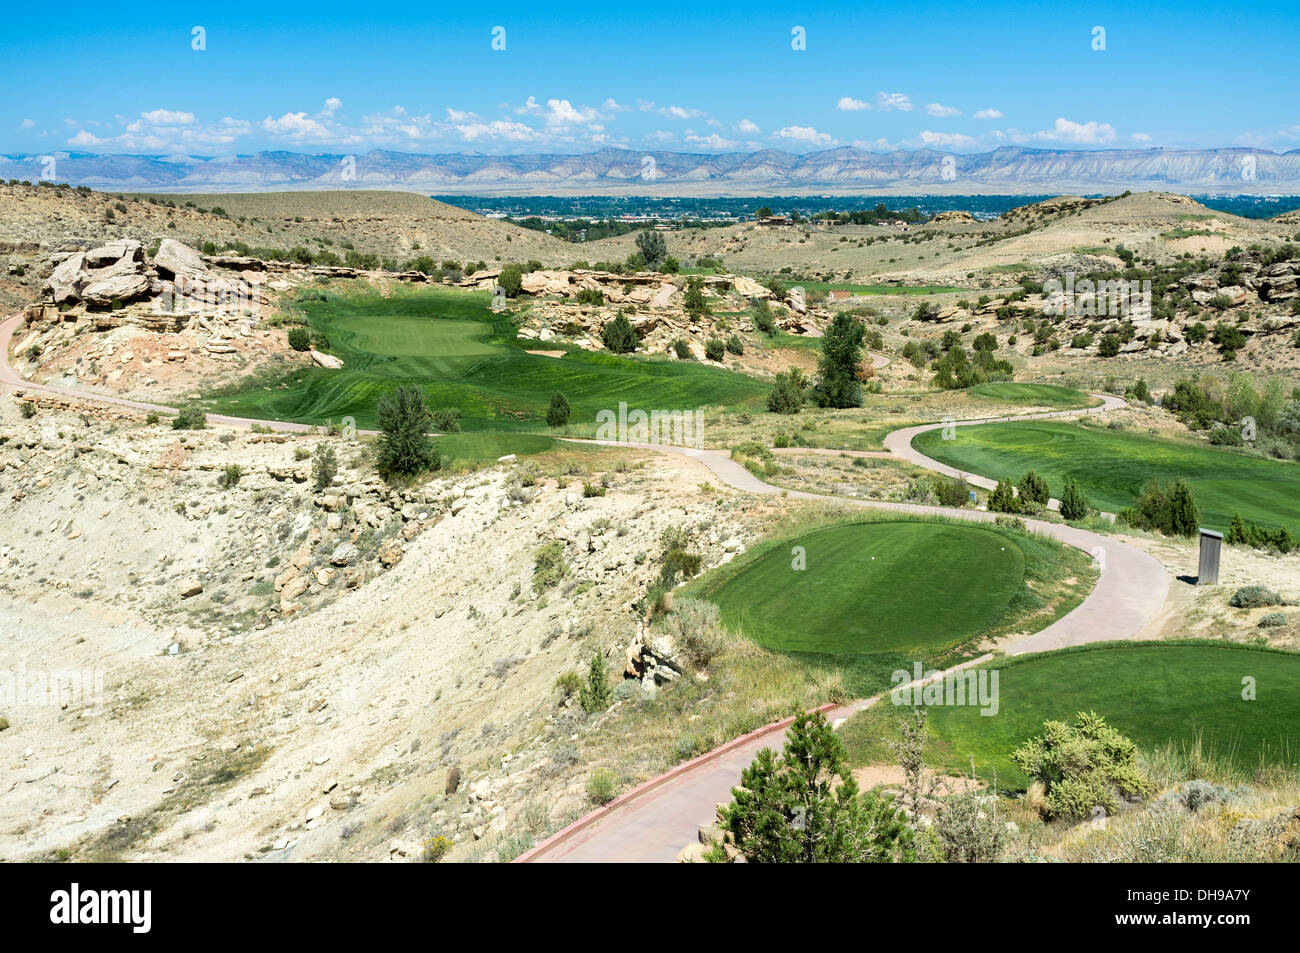 Seventeenth green and fairway at Redlands Mesa Golf Club, Grand Junction, Colorado, USA with the Little Book Cliff Mountain Range - Stock Image